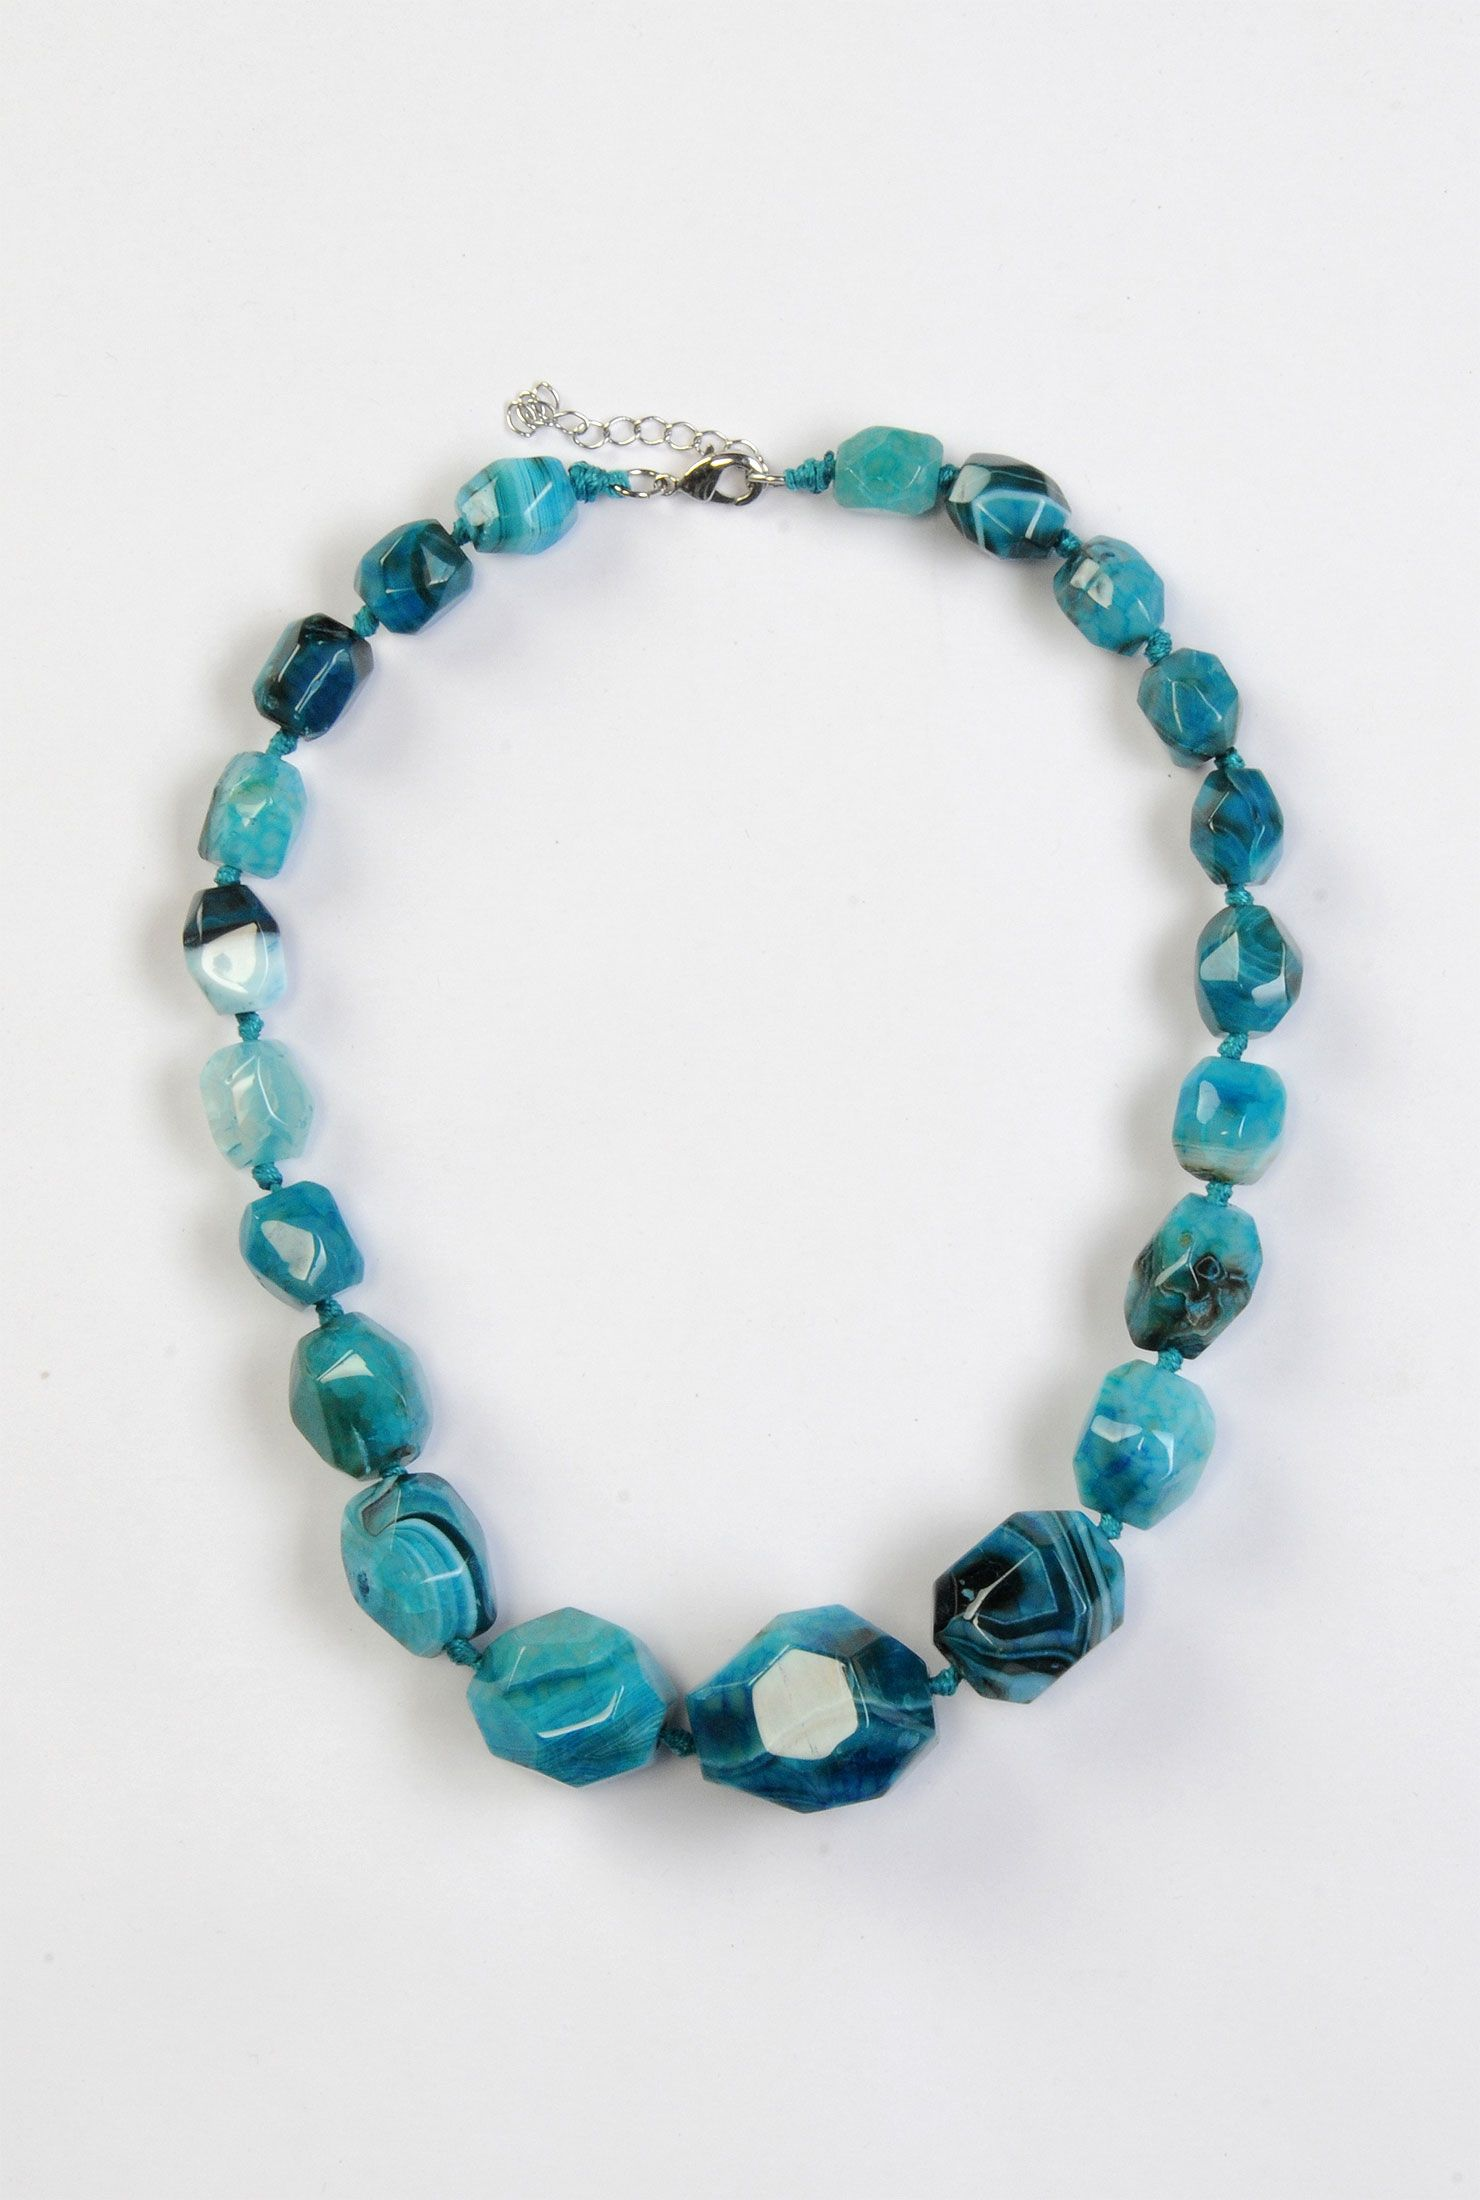 Aqua oceania necklace